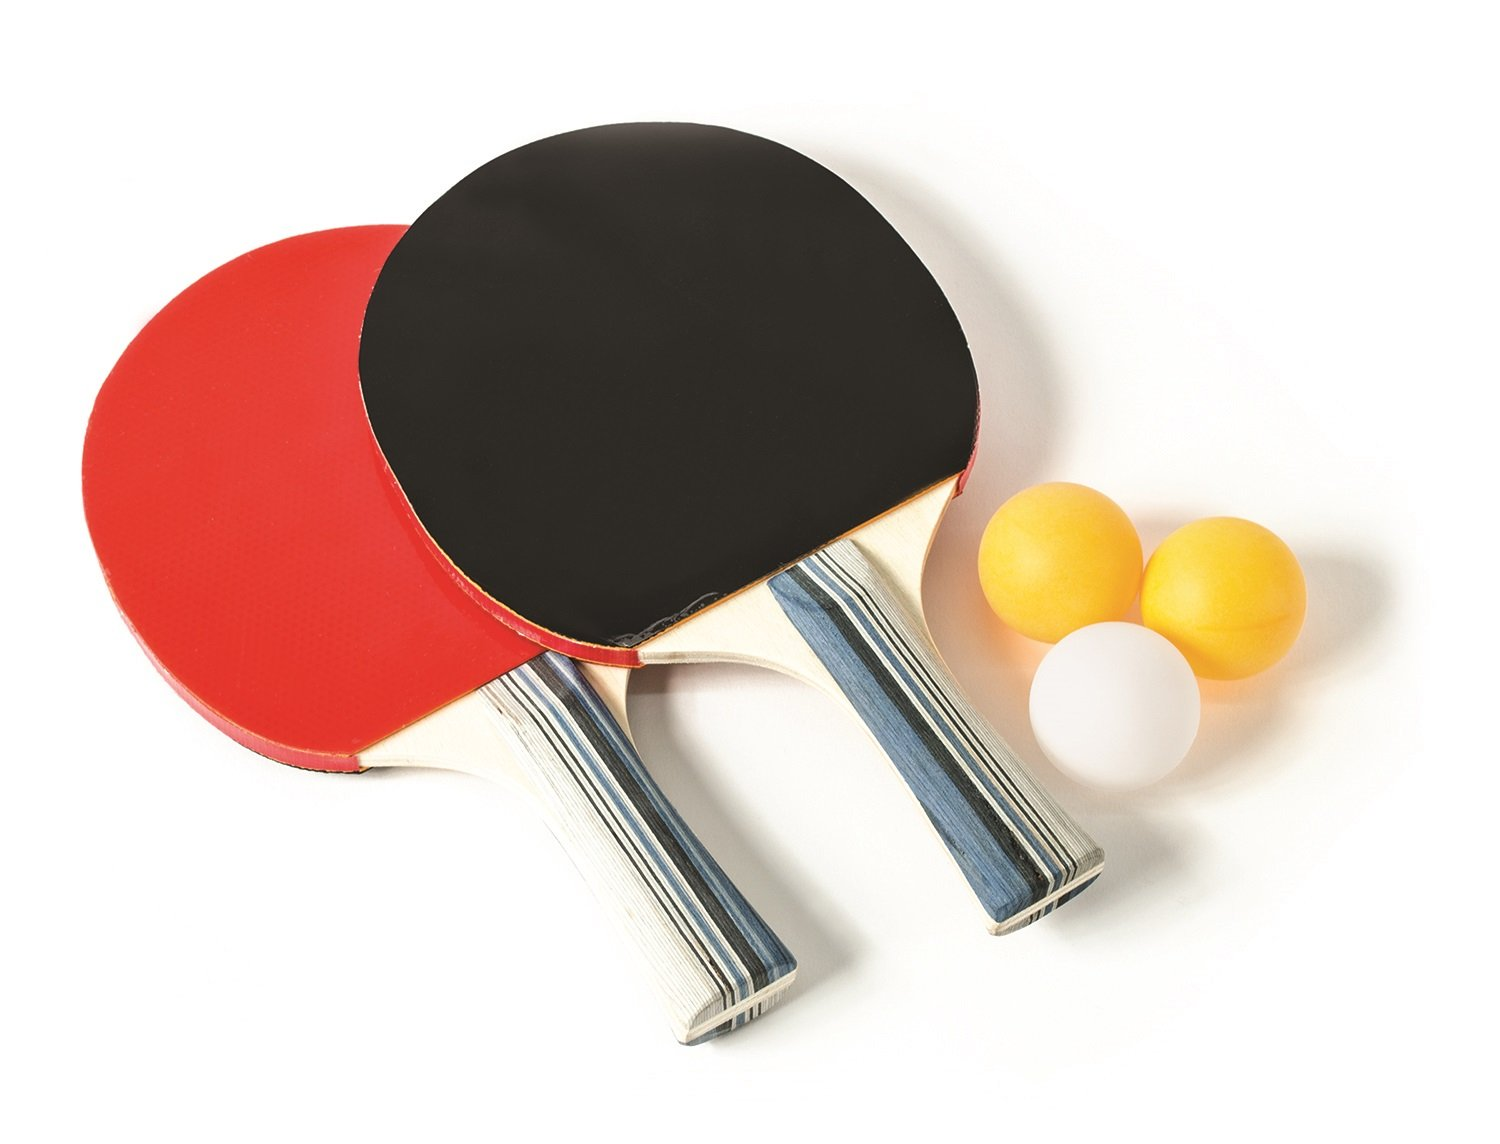 Laser Sports Novelty 2 Player Table Tennis Set, 2 Paddles and 3 Ping Pong Balls